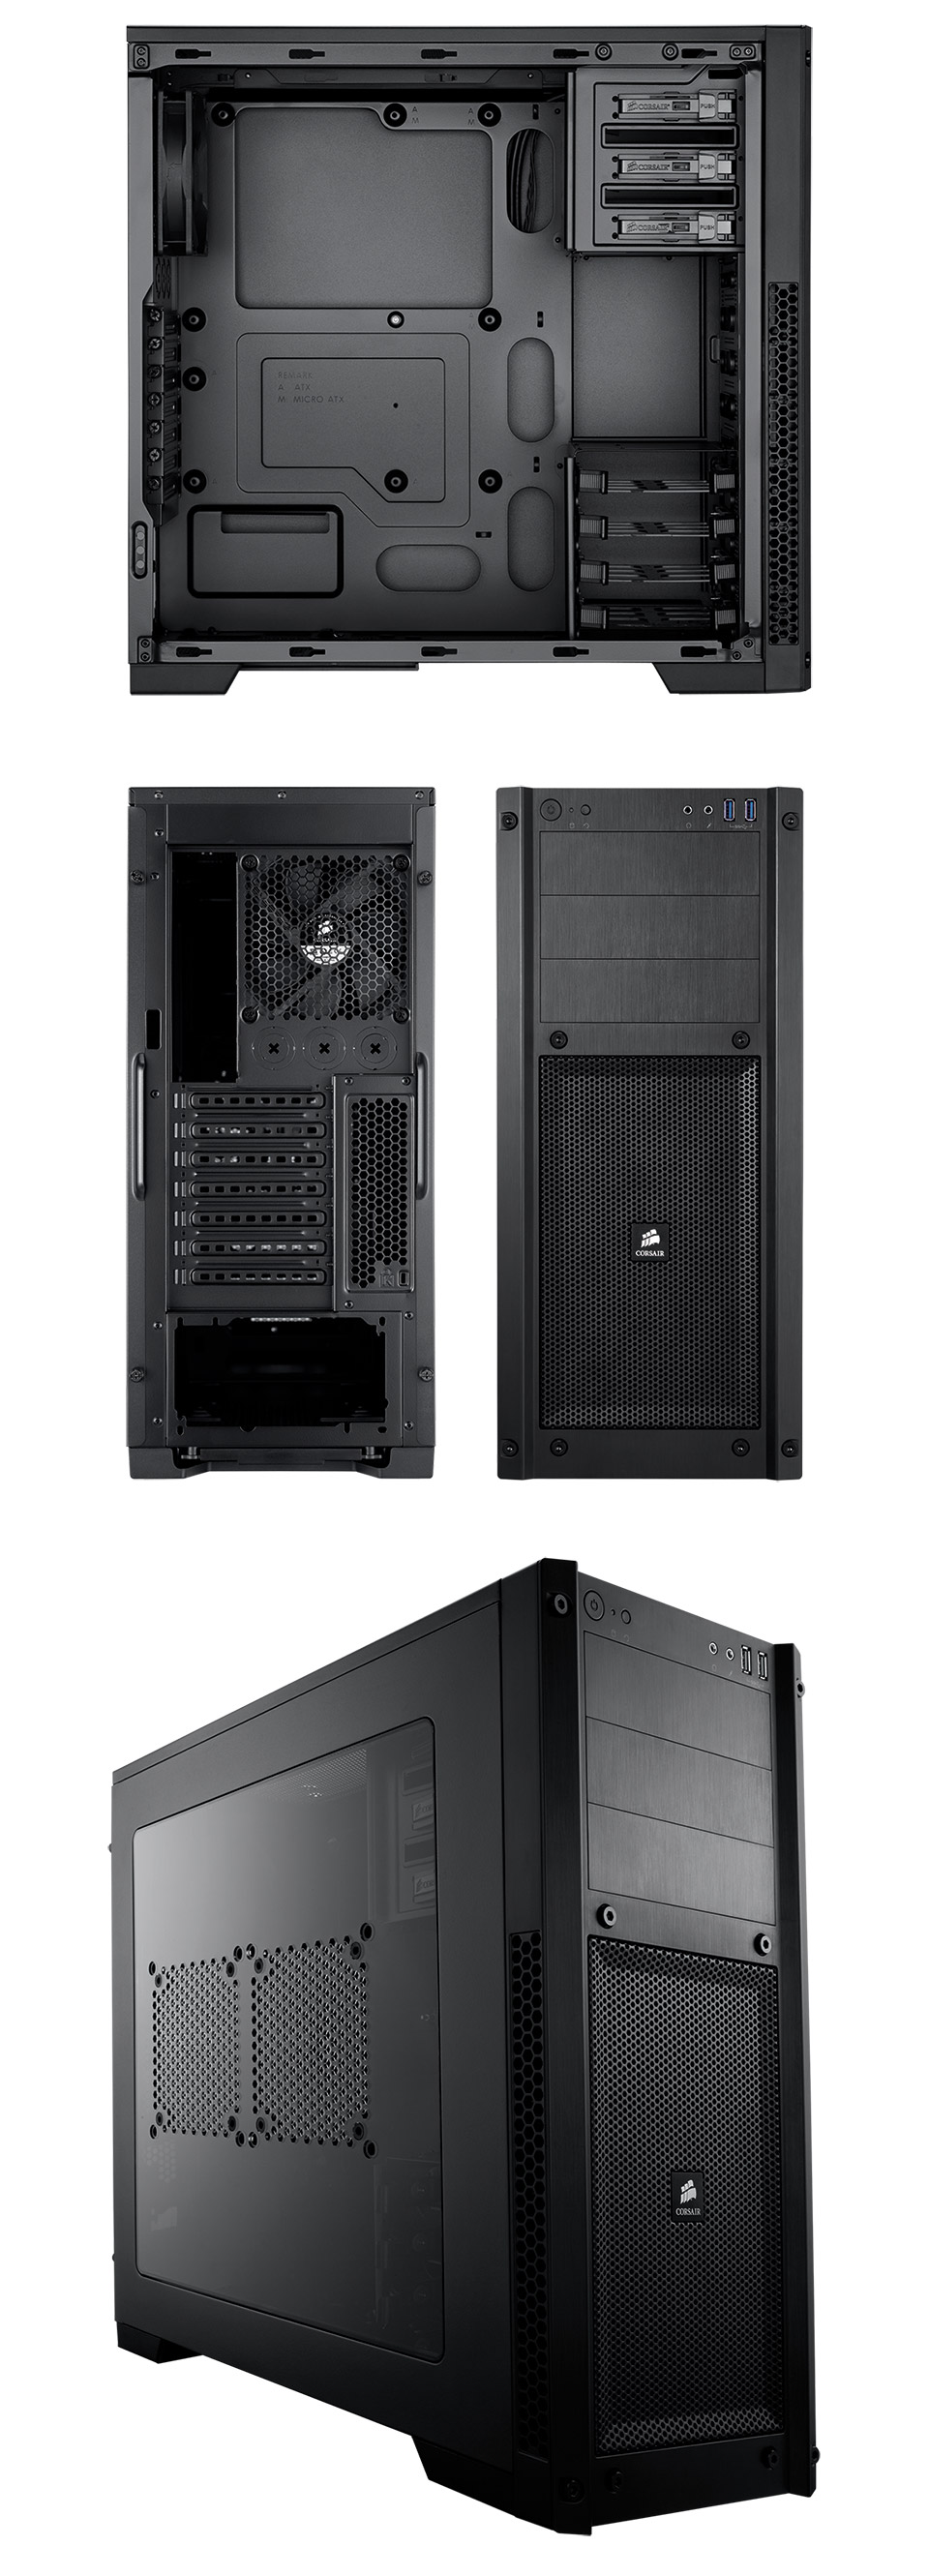 Corsair Carbide 300r Compact Gaming Case With Window Cc 9011017 Ww Windowed Side Panel Try Watching This Video On Youtubecom Or Enable Javascript If It Is Disabled In Your Browser